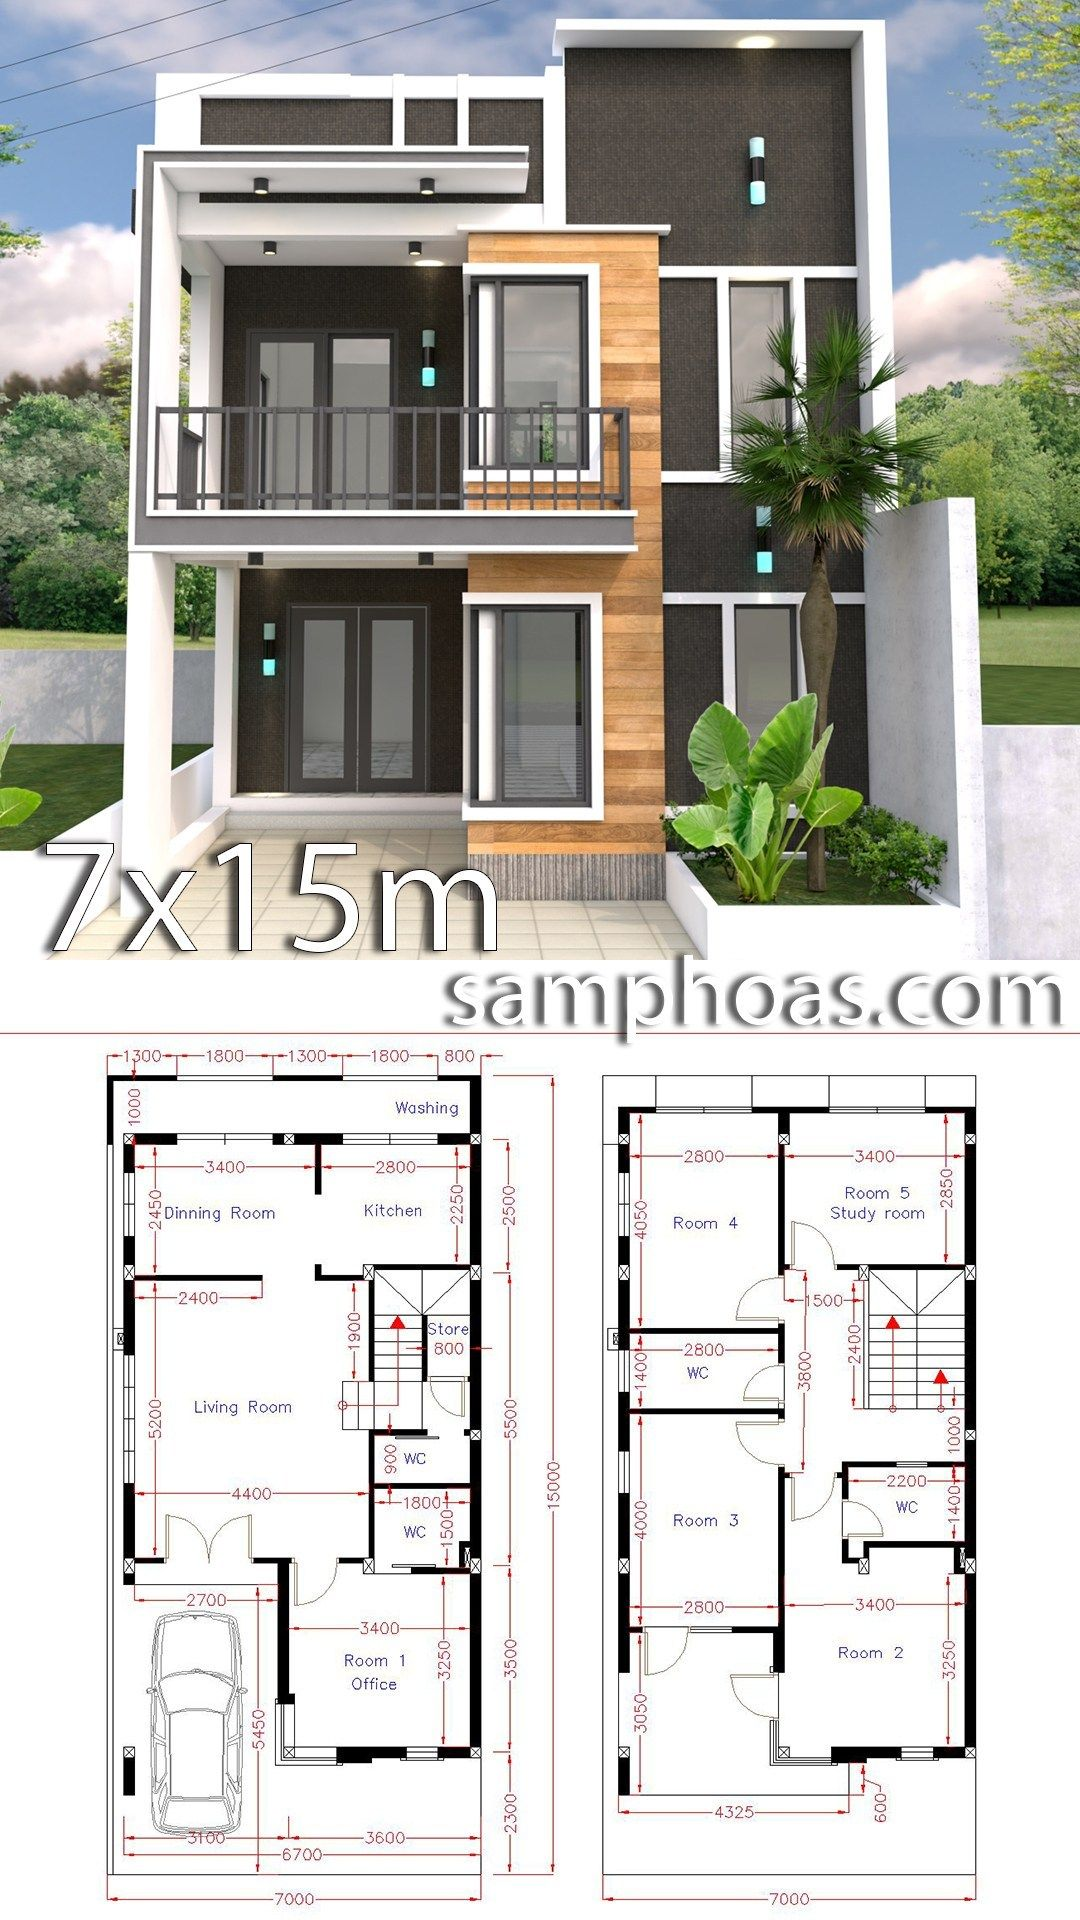 Home Design Plan 7x15m With 5 Bedrooms Samphoas Plansearch Duplex House Design Duplex House Plans Model House Plan